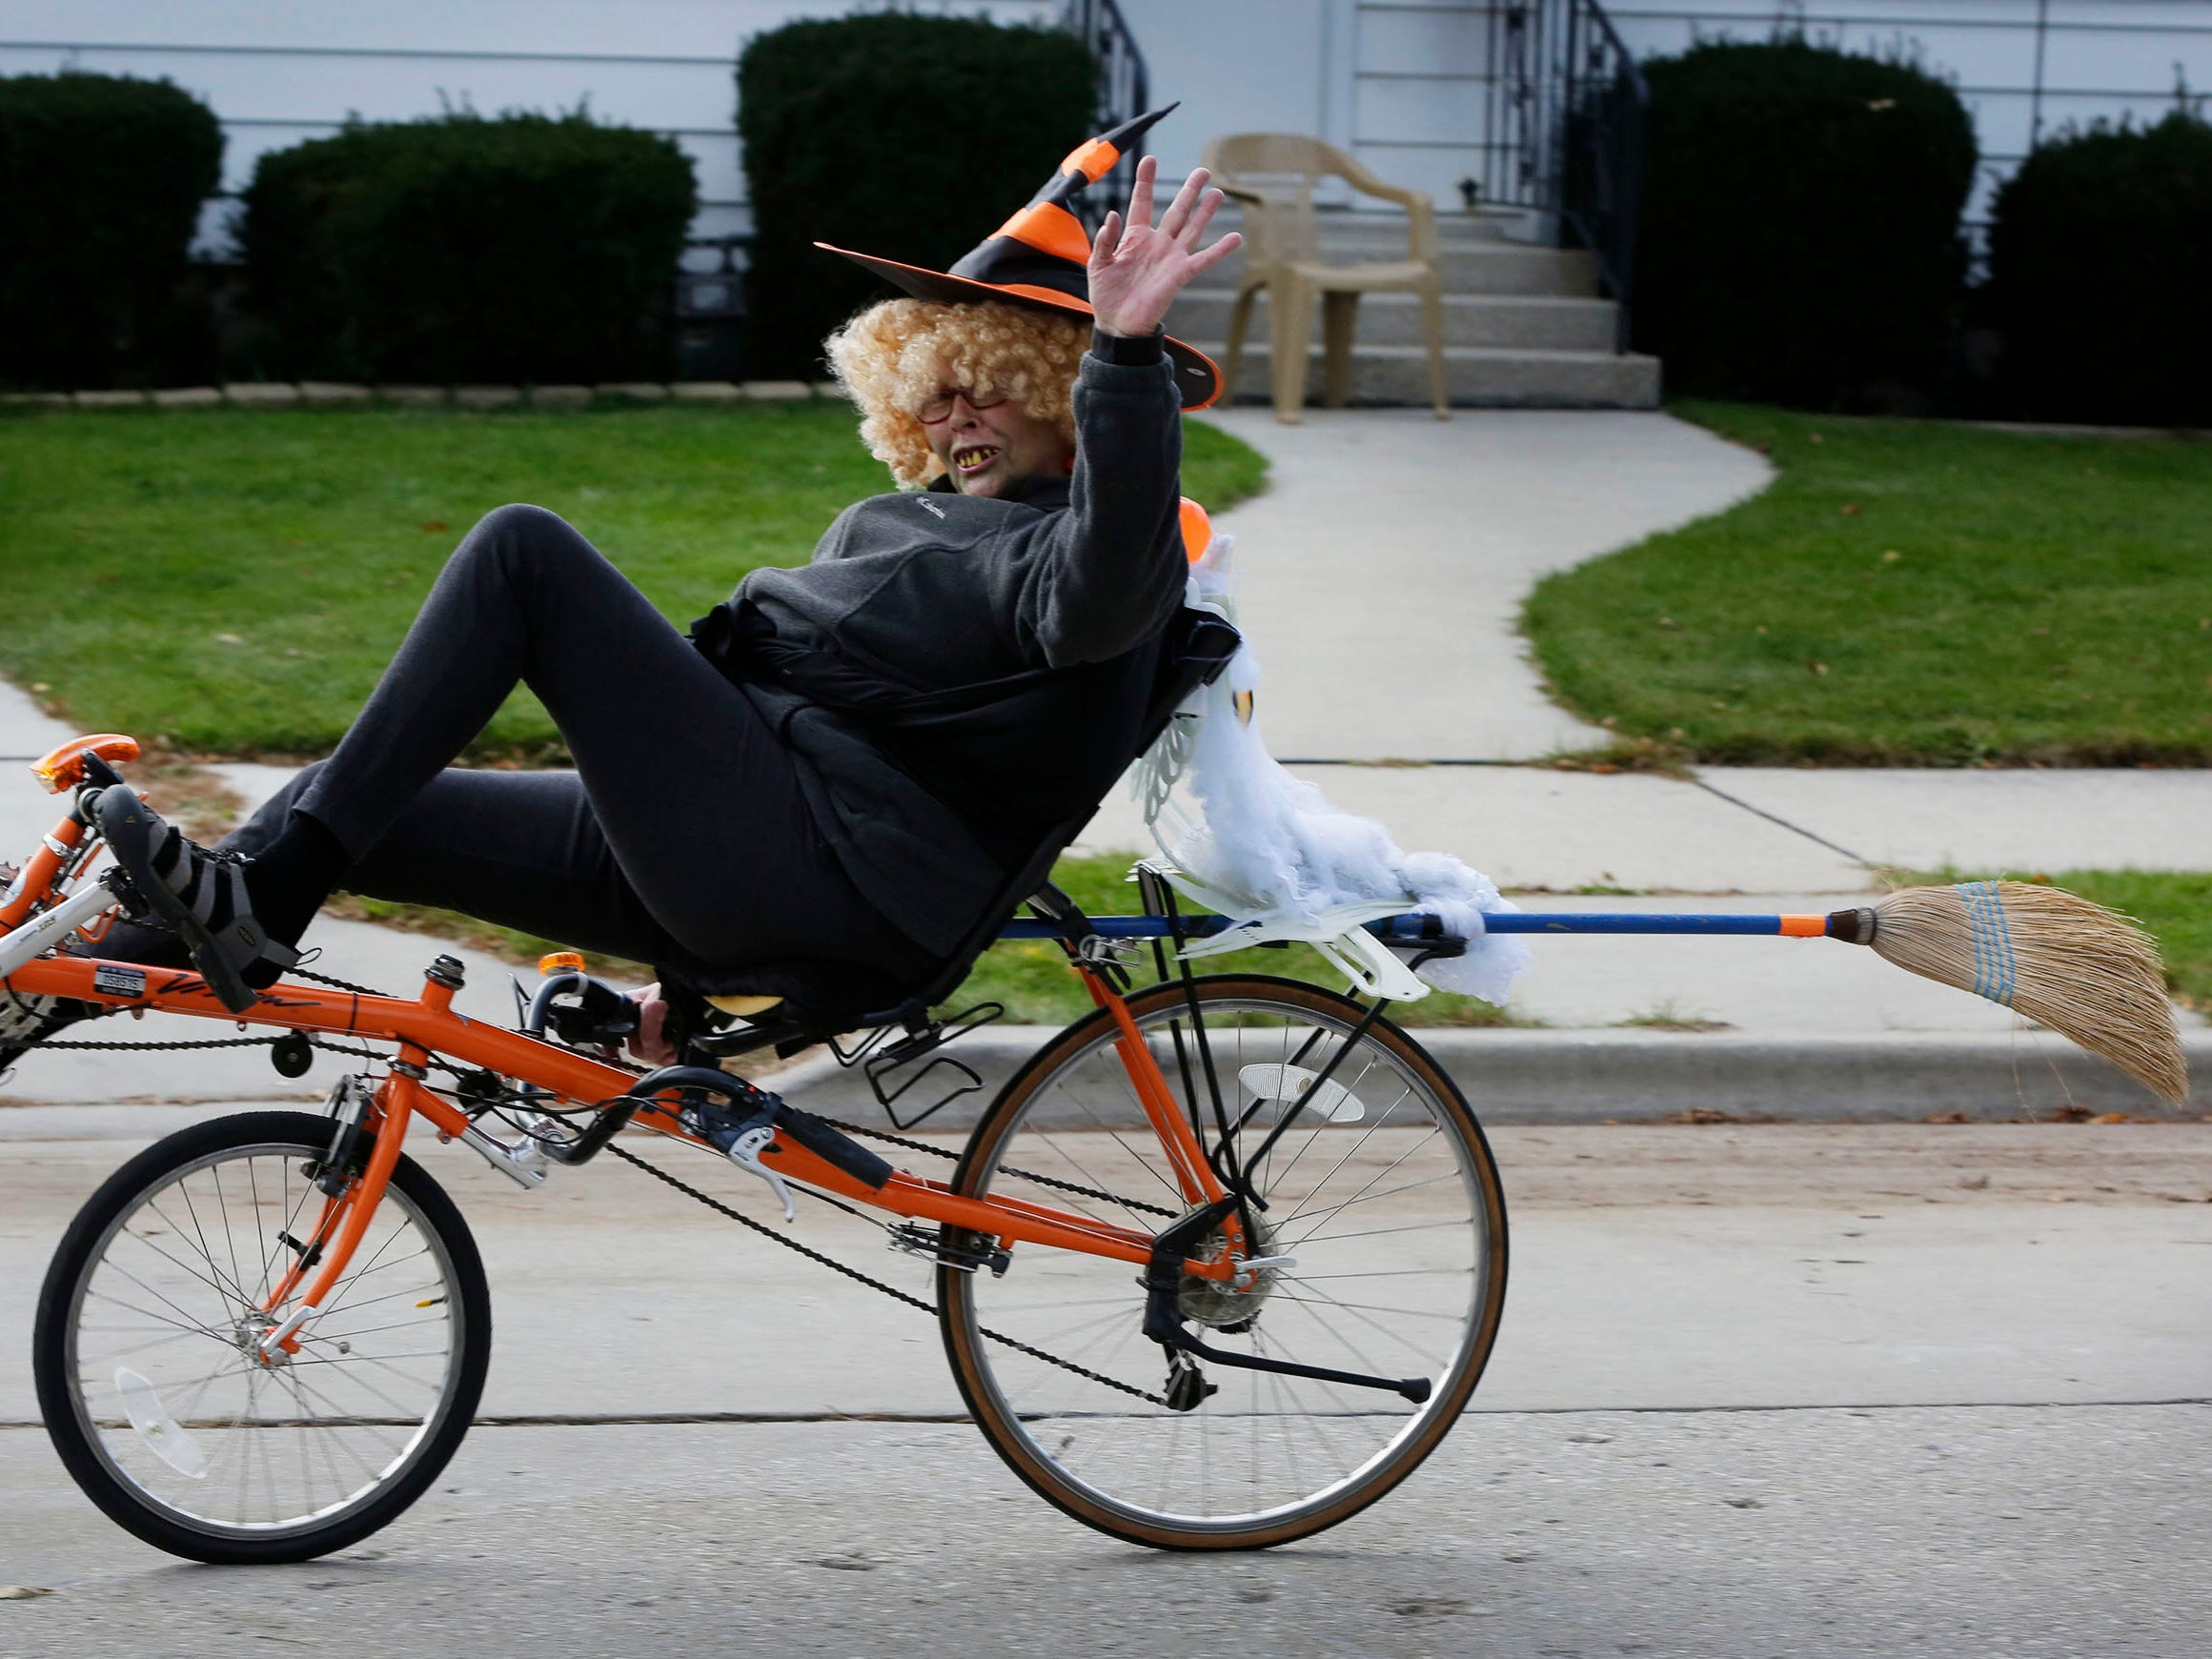 Joy Schildbach rides her bicycle as a witch during Trick or Treat, Wednesday, October 31, 2018, in Sheboygan, Wis.